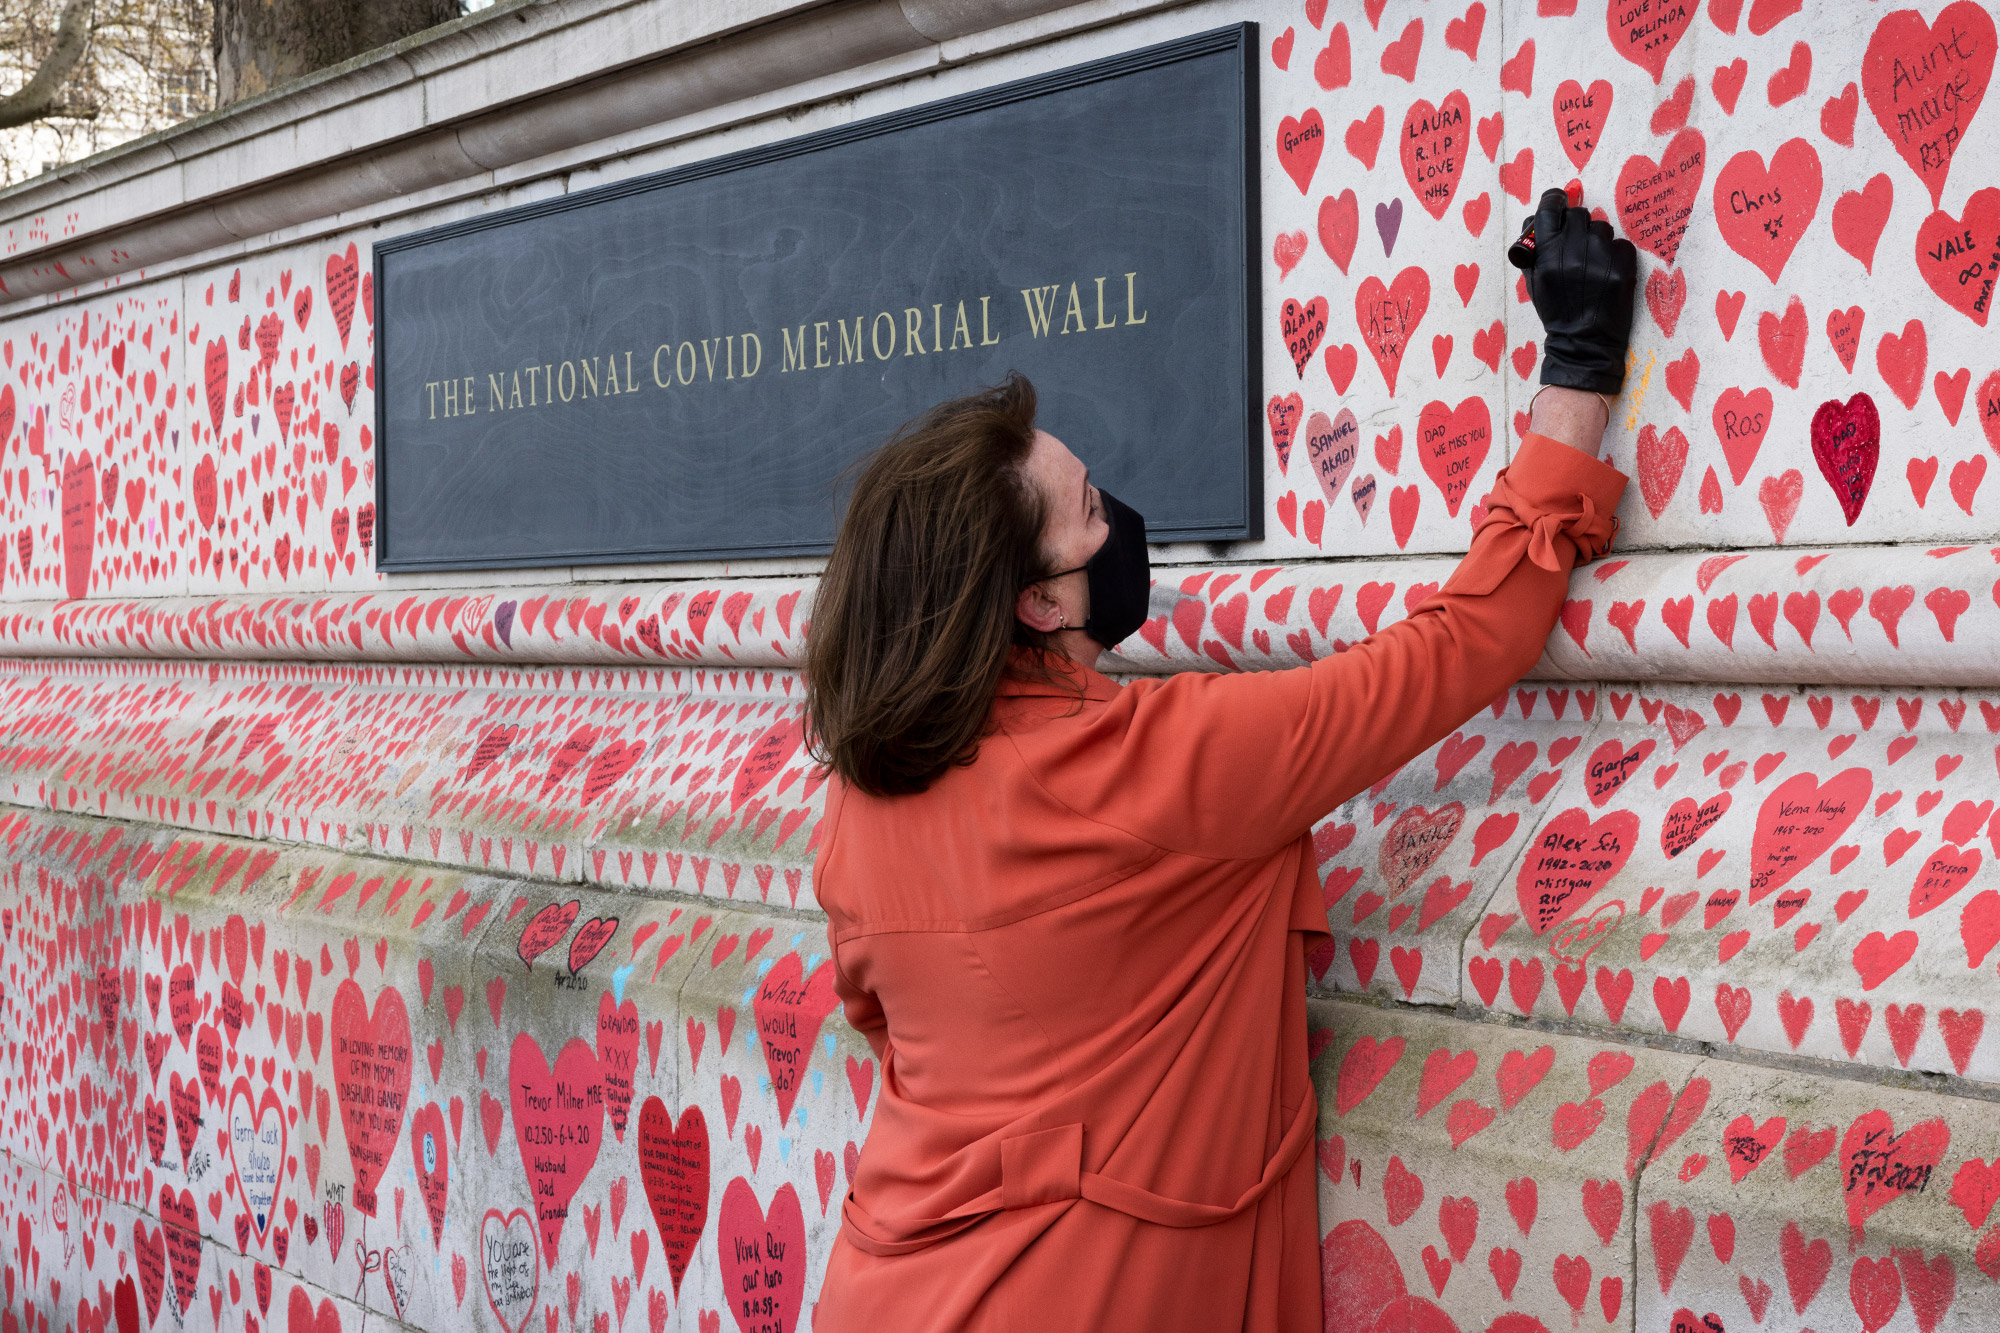 The National Covid Memorial Wall Reaches Completion As Final Heart Is Drawn On